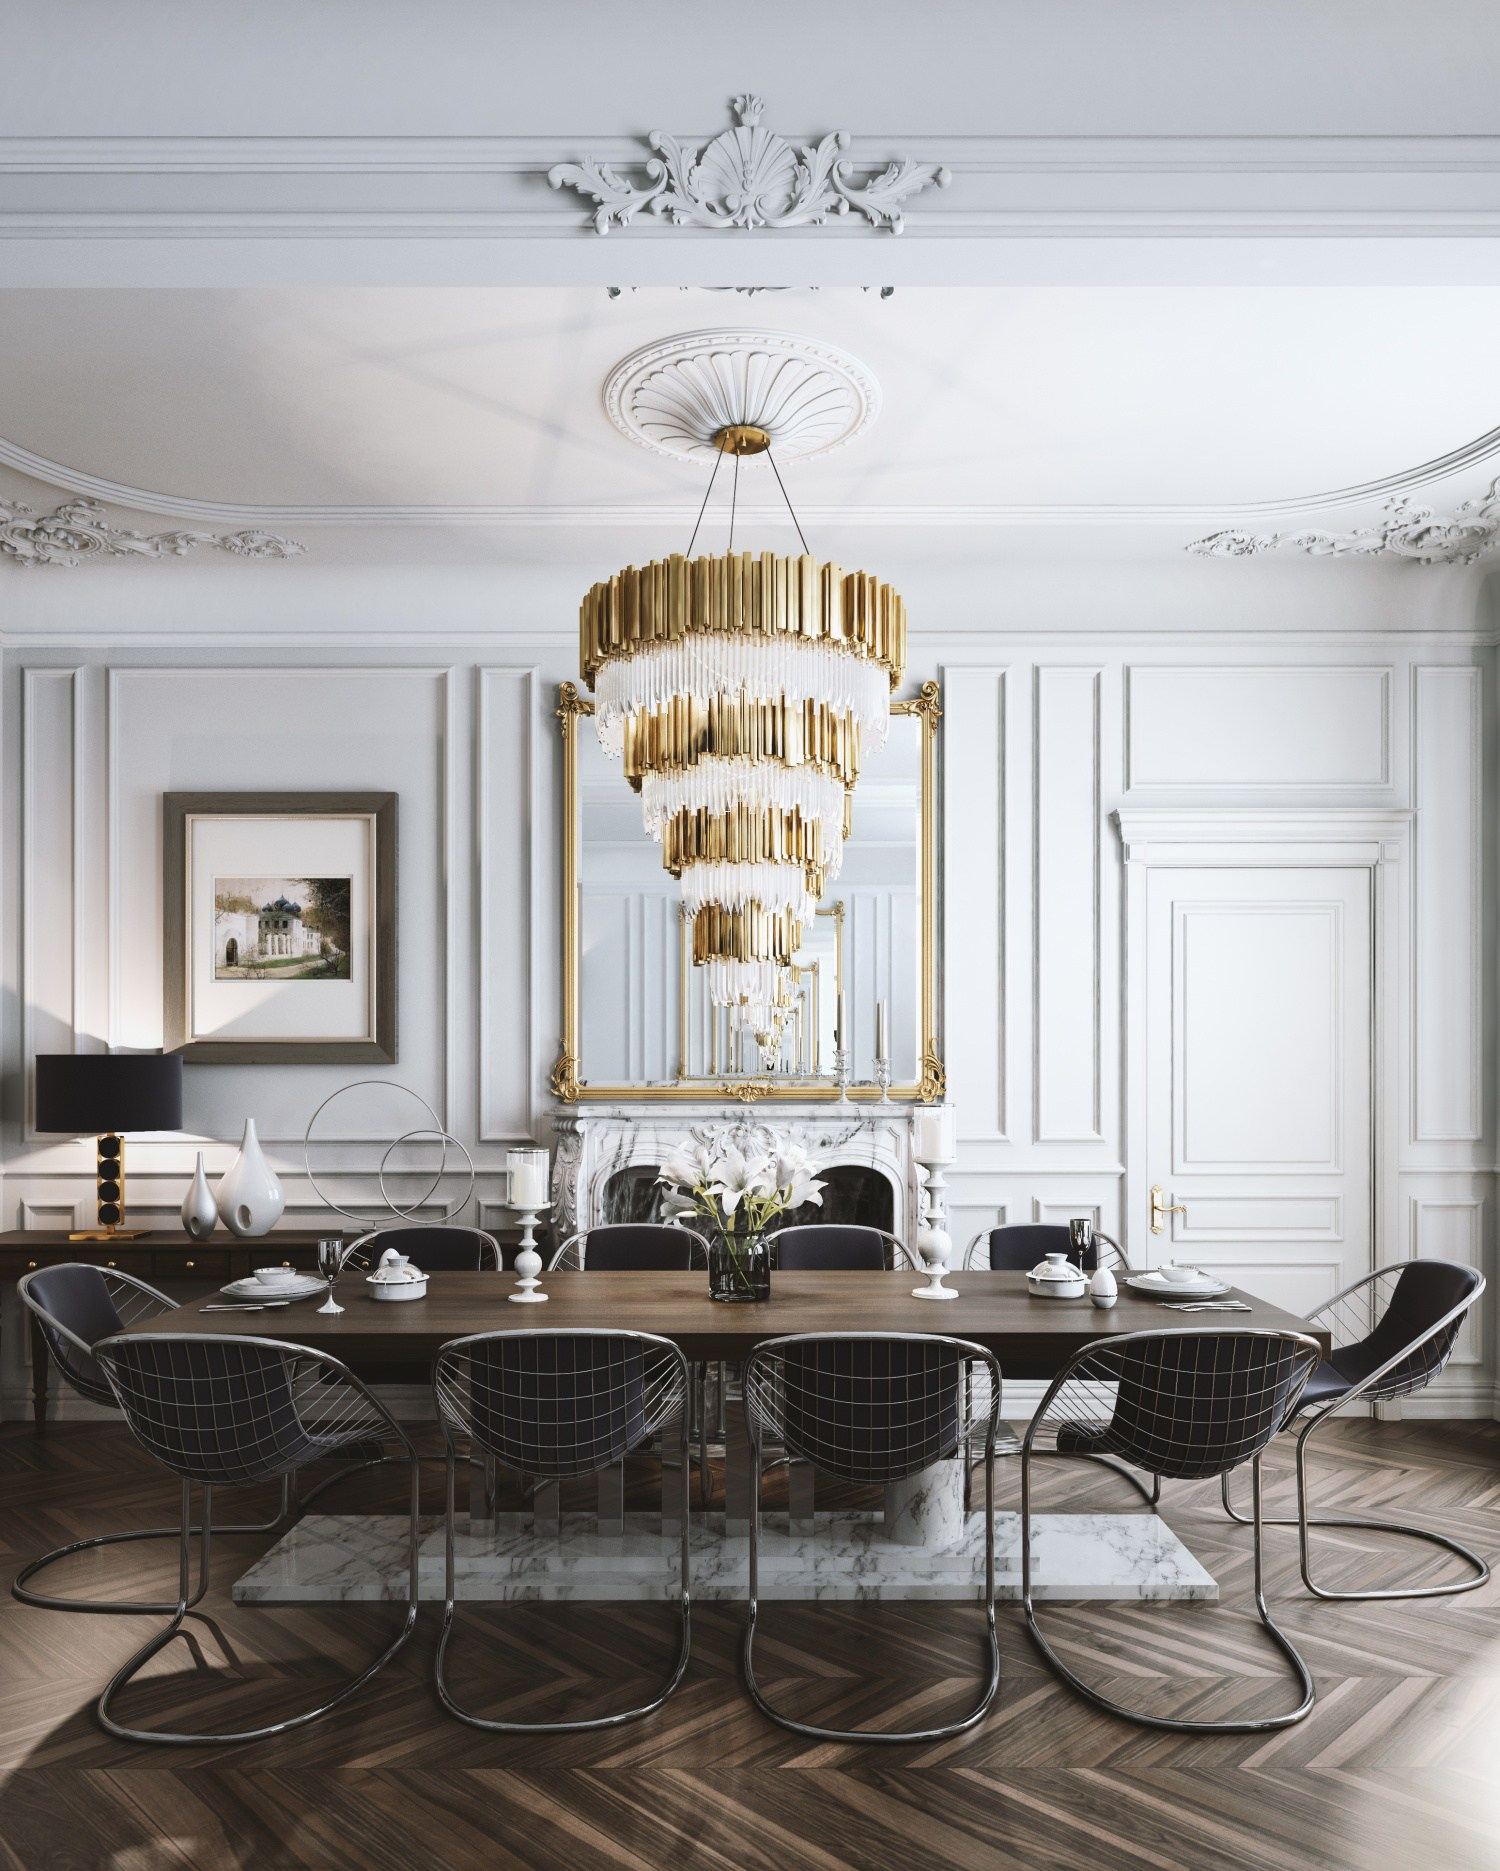 Must-See Luxury Lighting Ideas For the Daring Designer luxury lighting Must-See Luxury Lighting Ideas For the Daring Designer Luxury Lighting Ideas For the Daring Designer 2